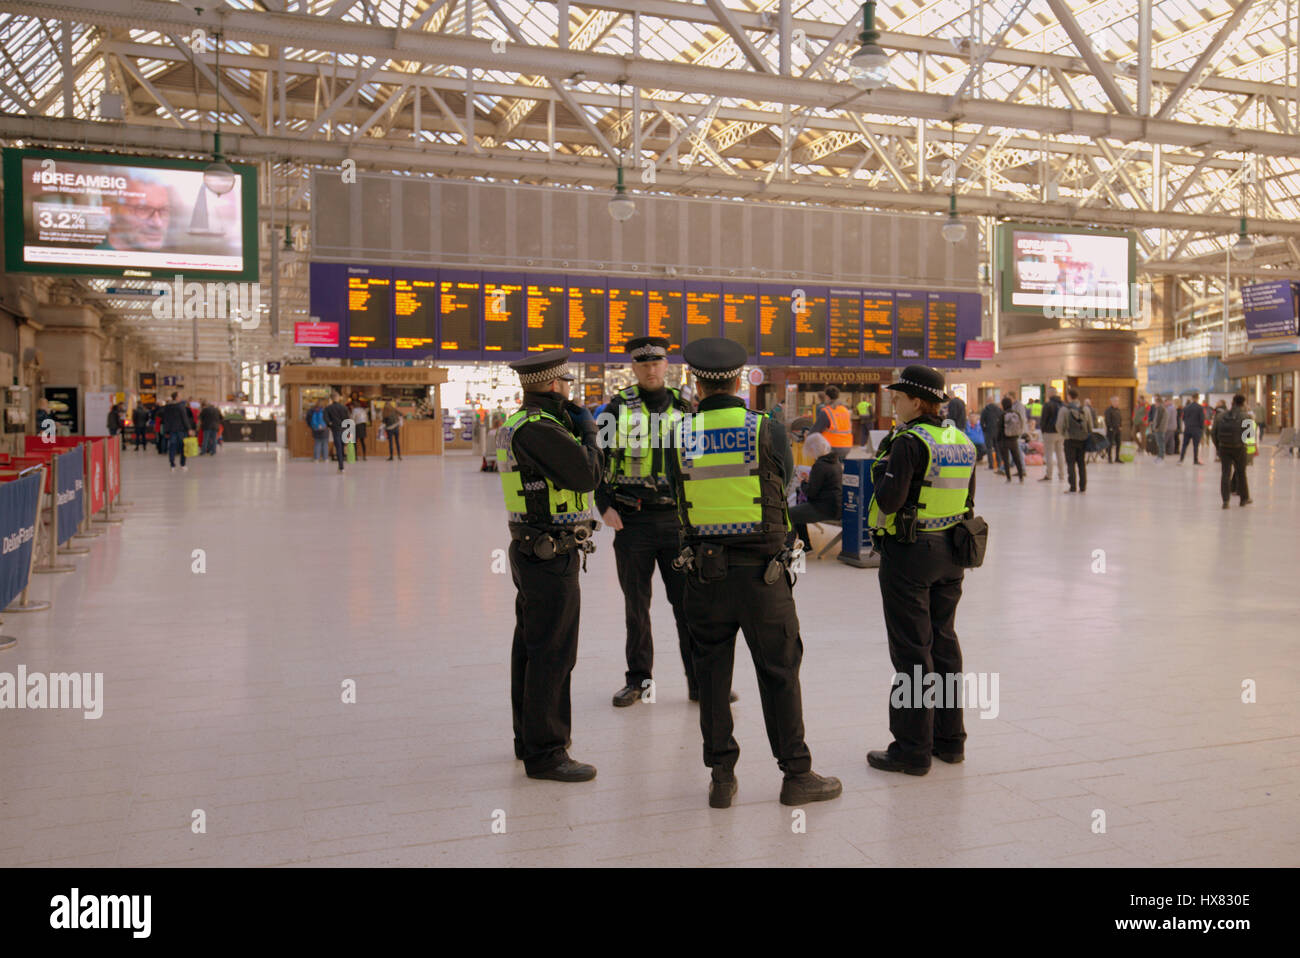 central station Glasgow interior police huddle terrorism police central station British transport police - Stock Image